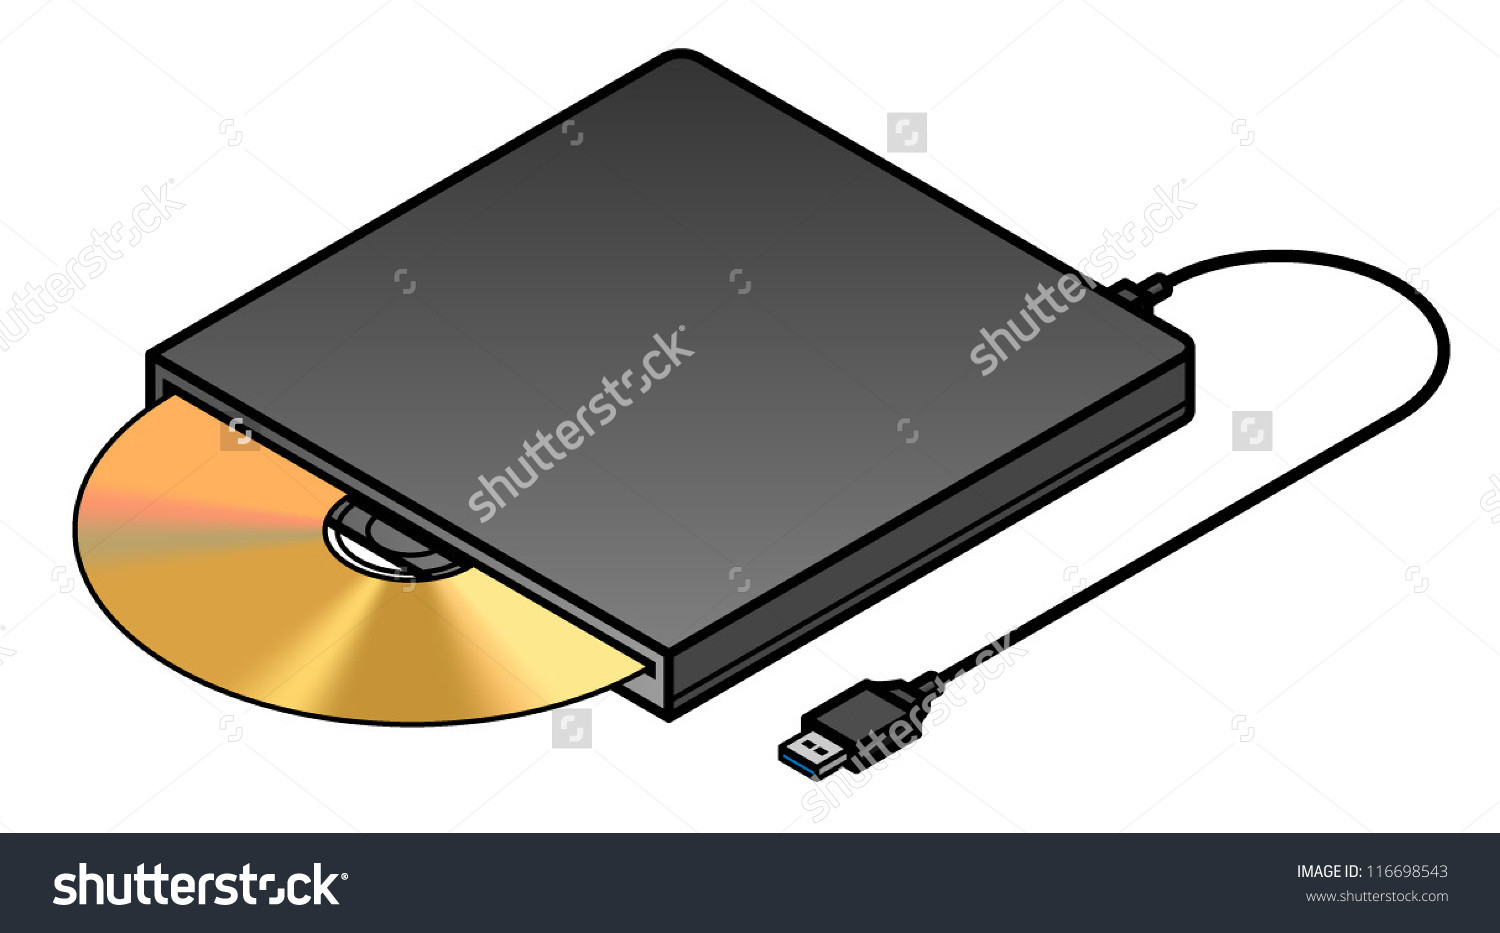 An External Usb Slot Loading Optical Drive. Stock Vector.